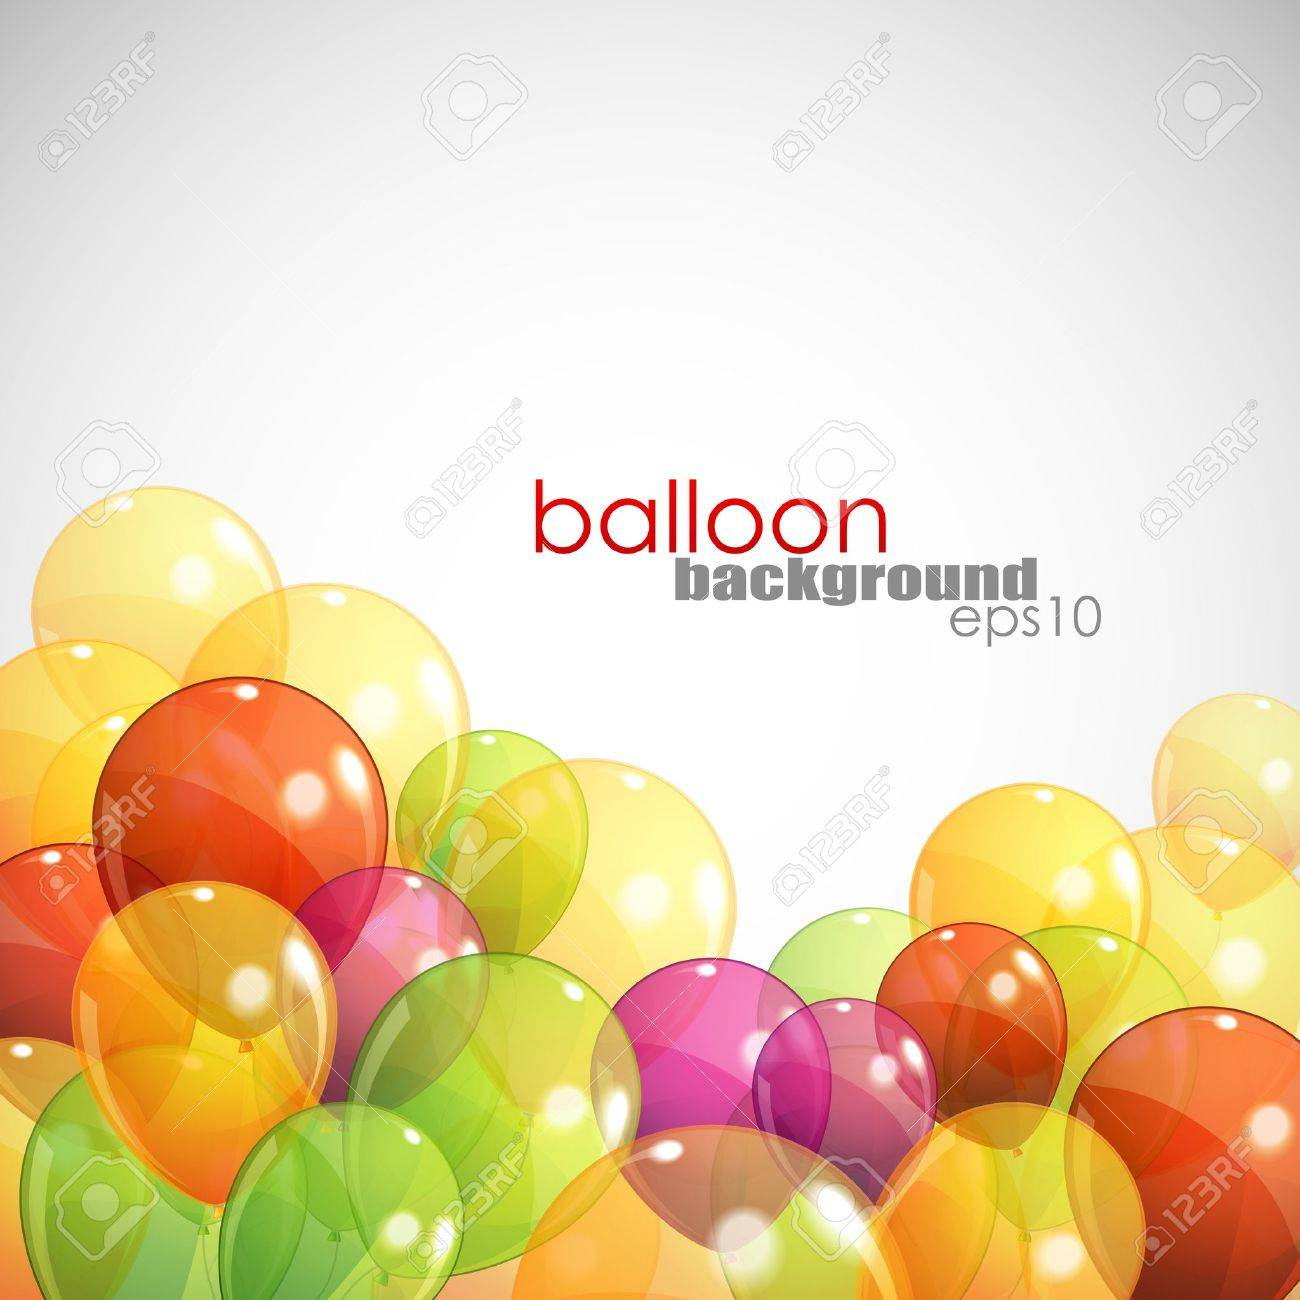 background with multicolored balloons - 18858002